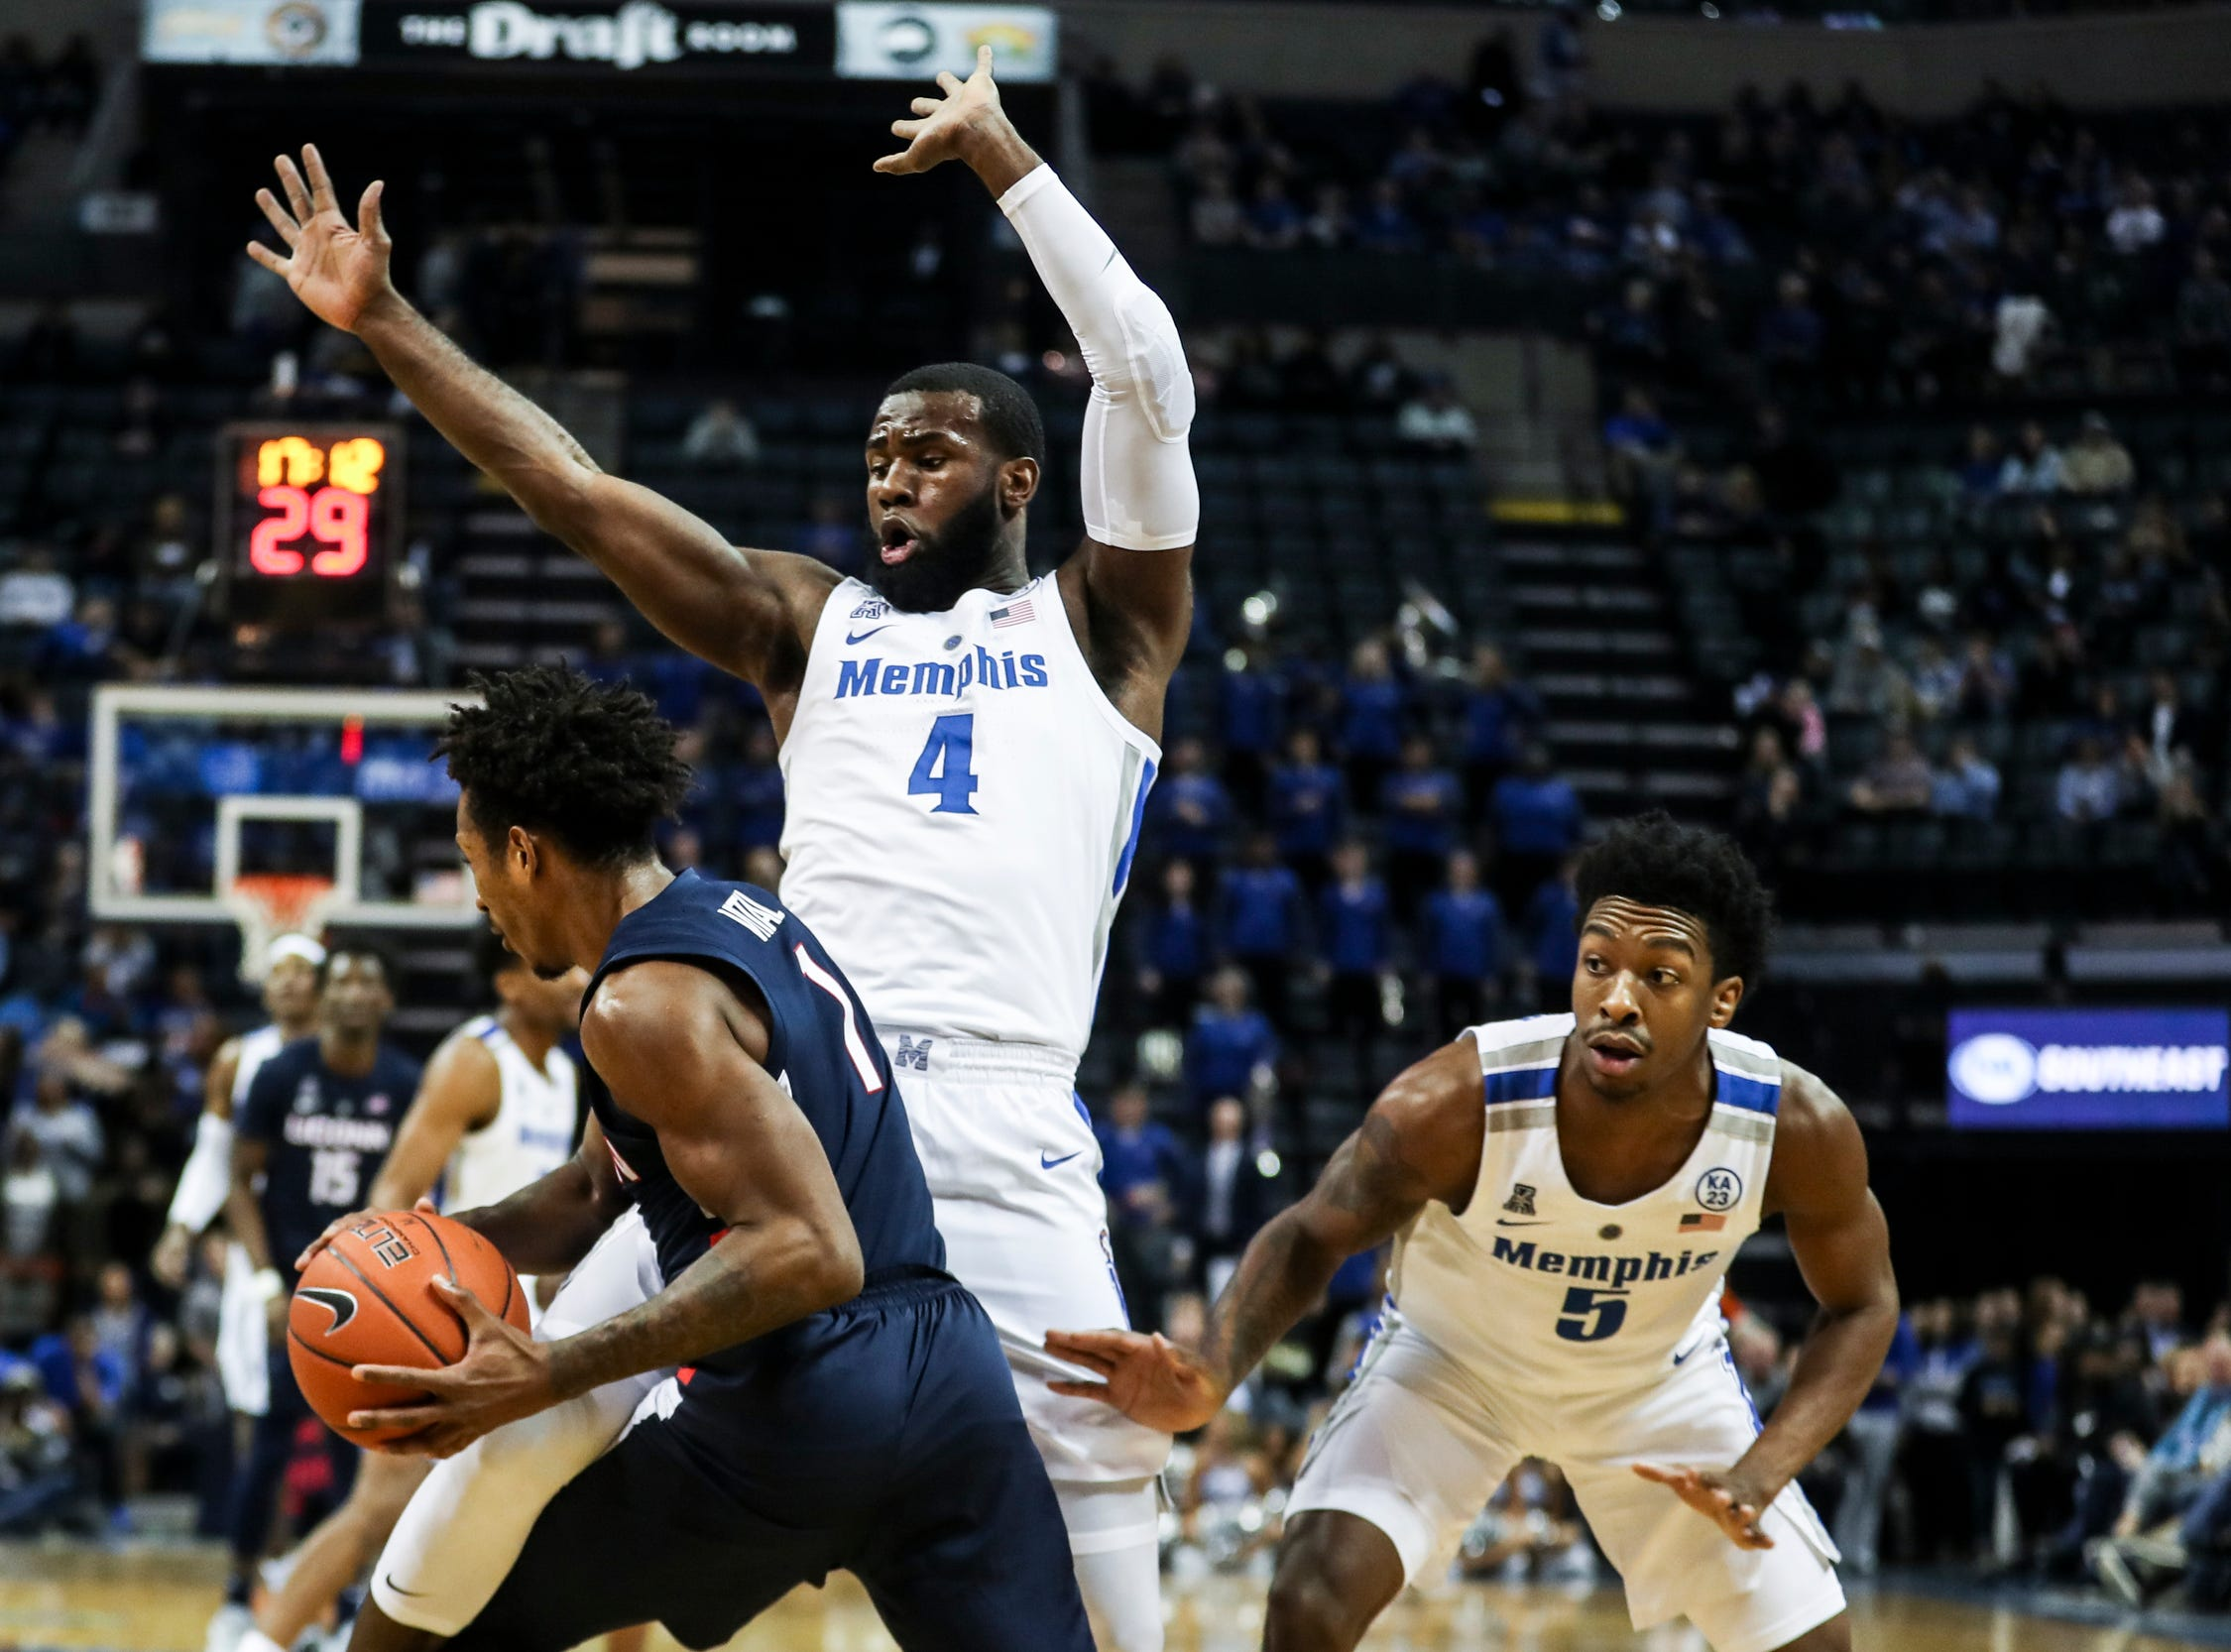 February 10, 2019 - Memphis' Raynere Thornton, center, and Kareem Brewton Jr., right, defend Connecticut's Christian Vital during Sunday's game versus Connecticut at the FedExForum.